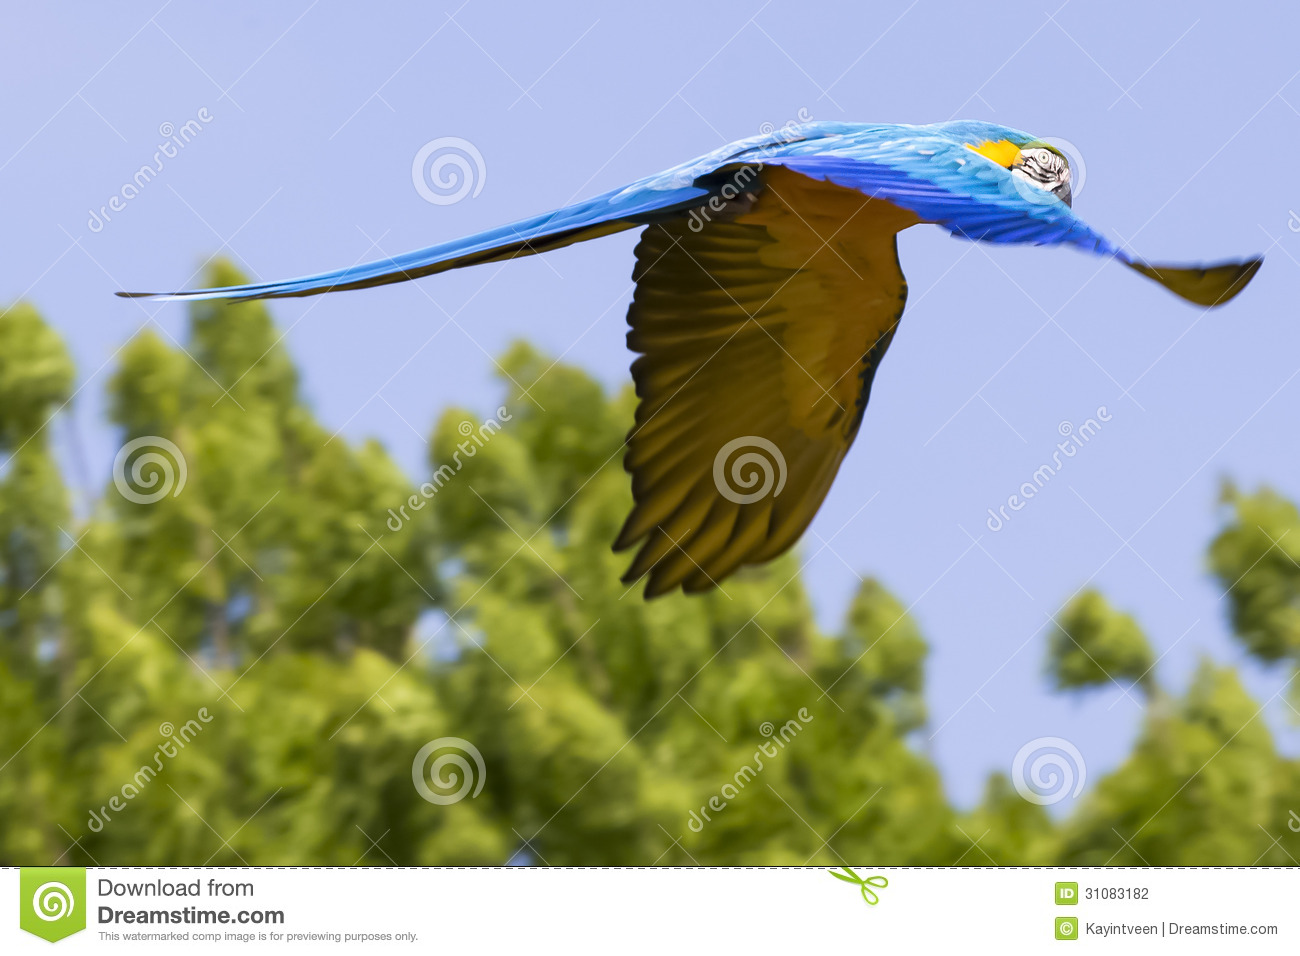 Searching for Slava: THEY PLAY AFTER DARK |Blue Macaw Parrot Flying